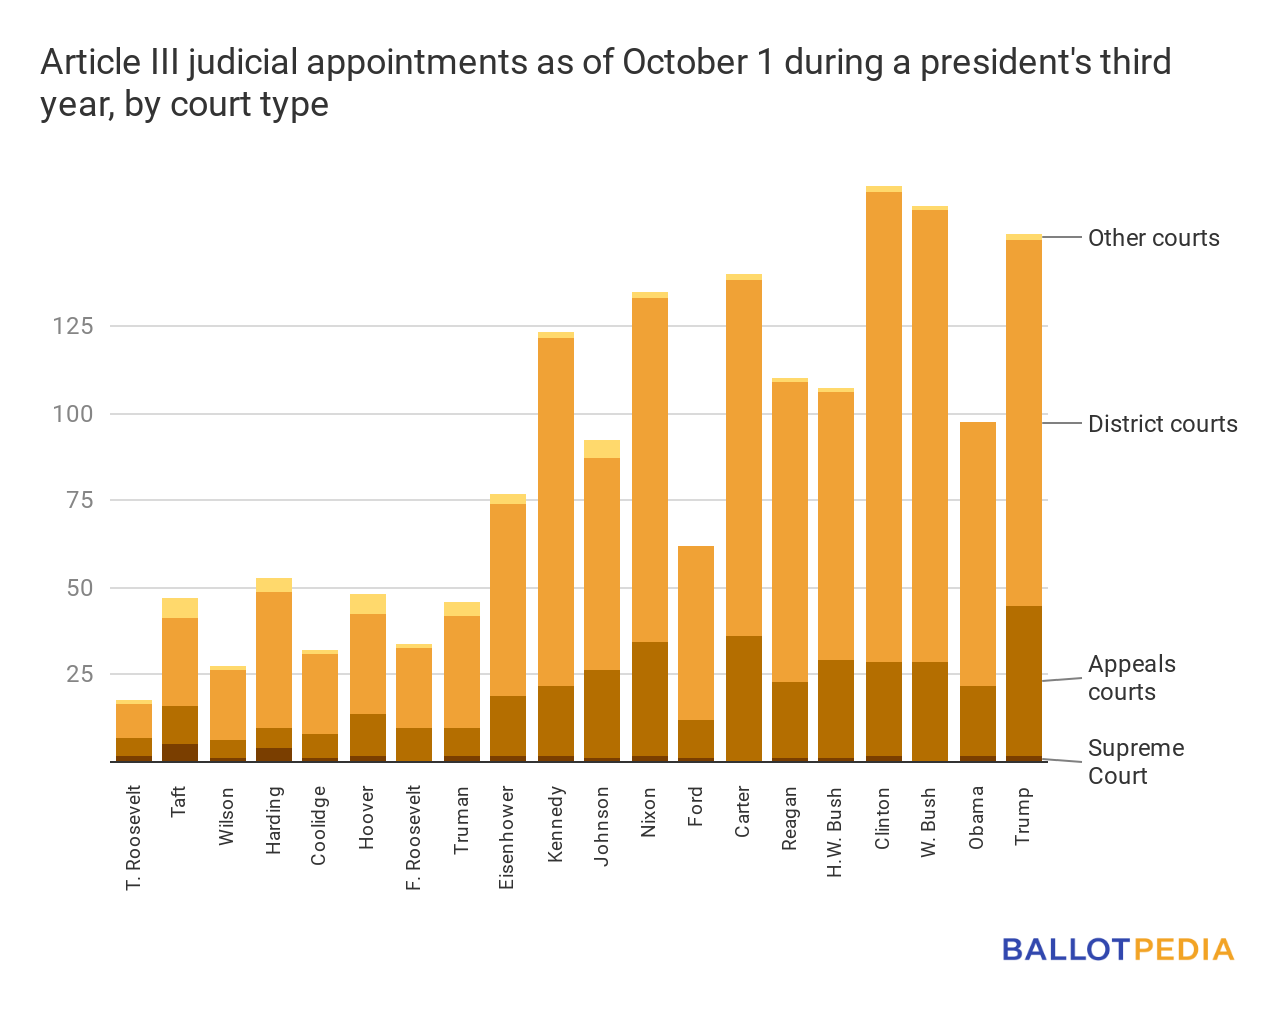 Table of judicial appointments by president